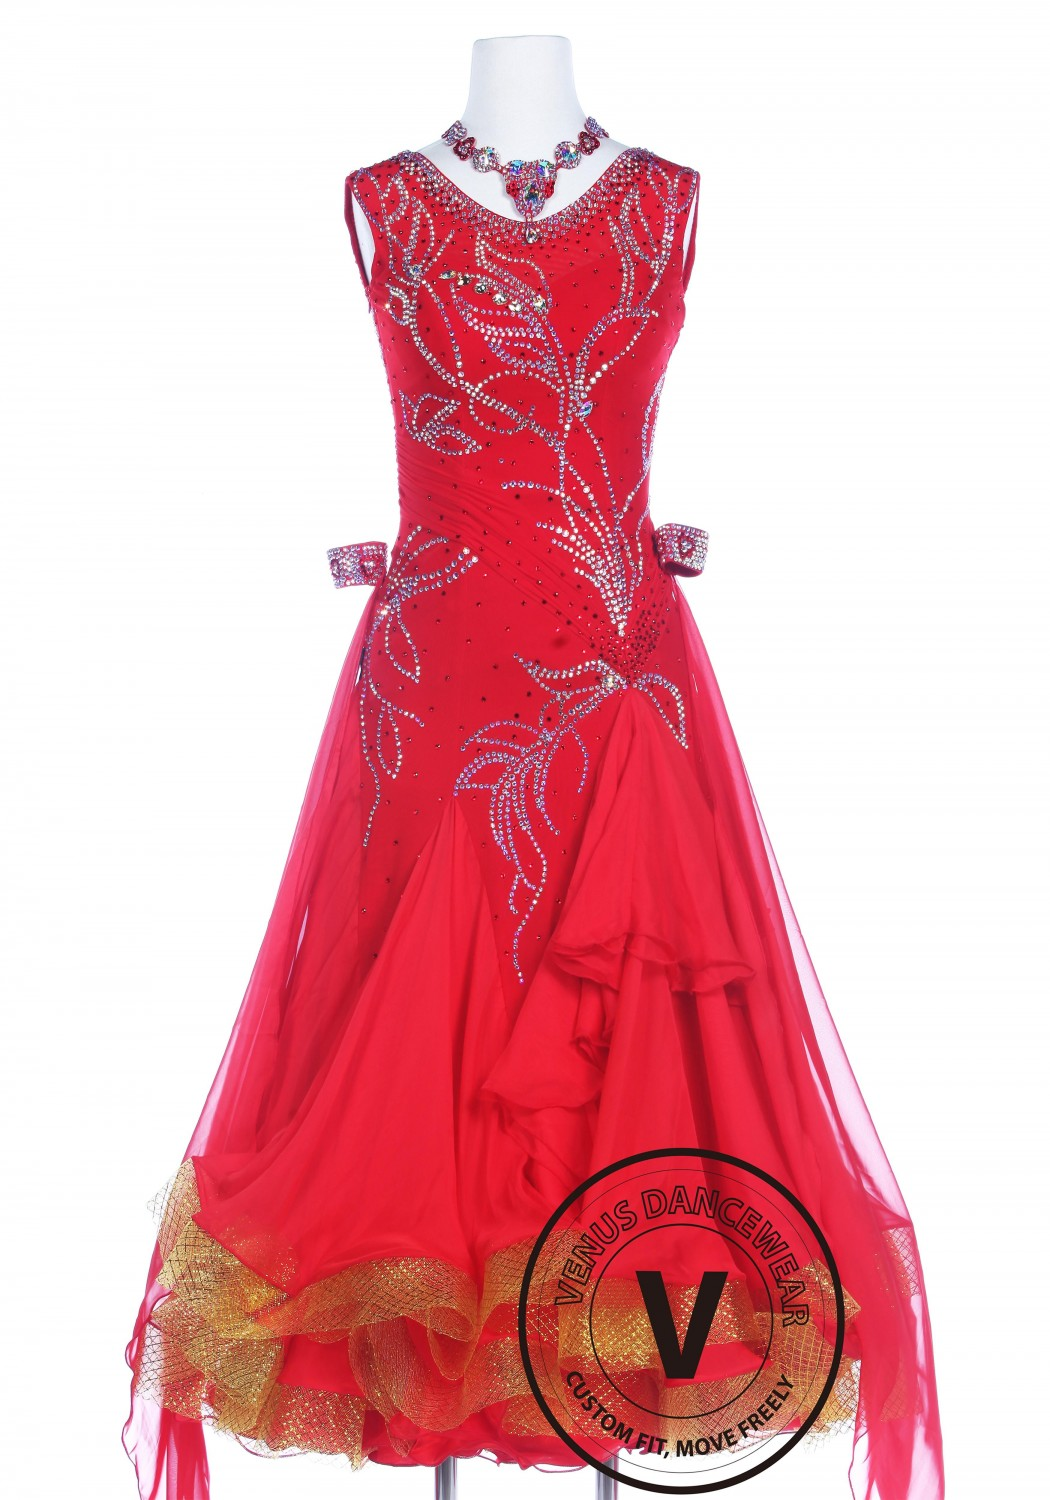 Luxury Bright Red Ballroom Smooth Competition Dance Dress